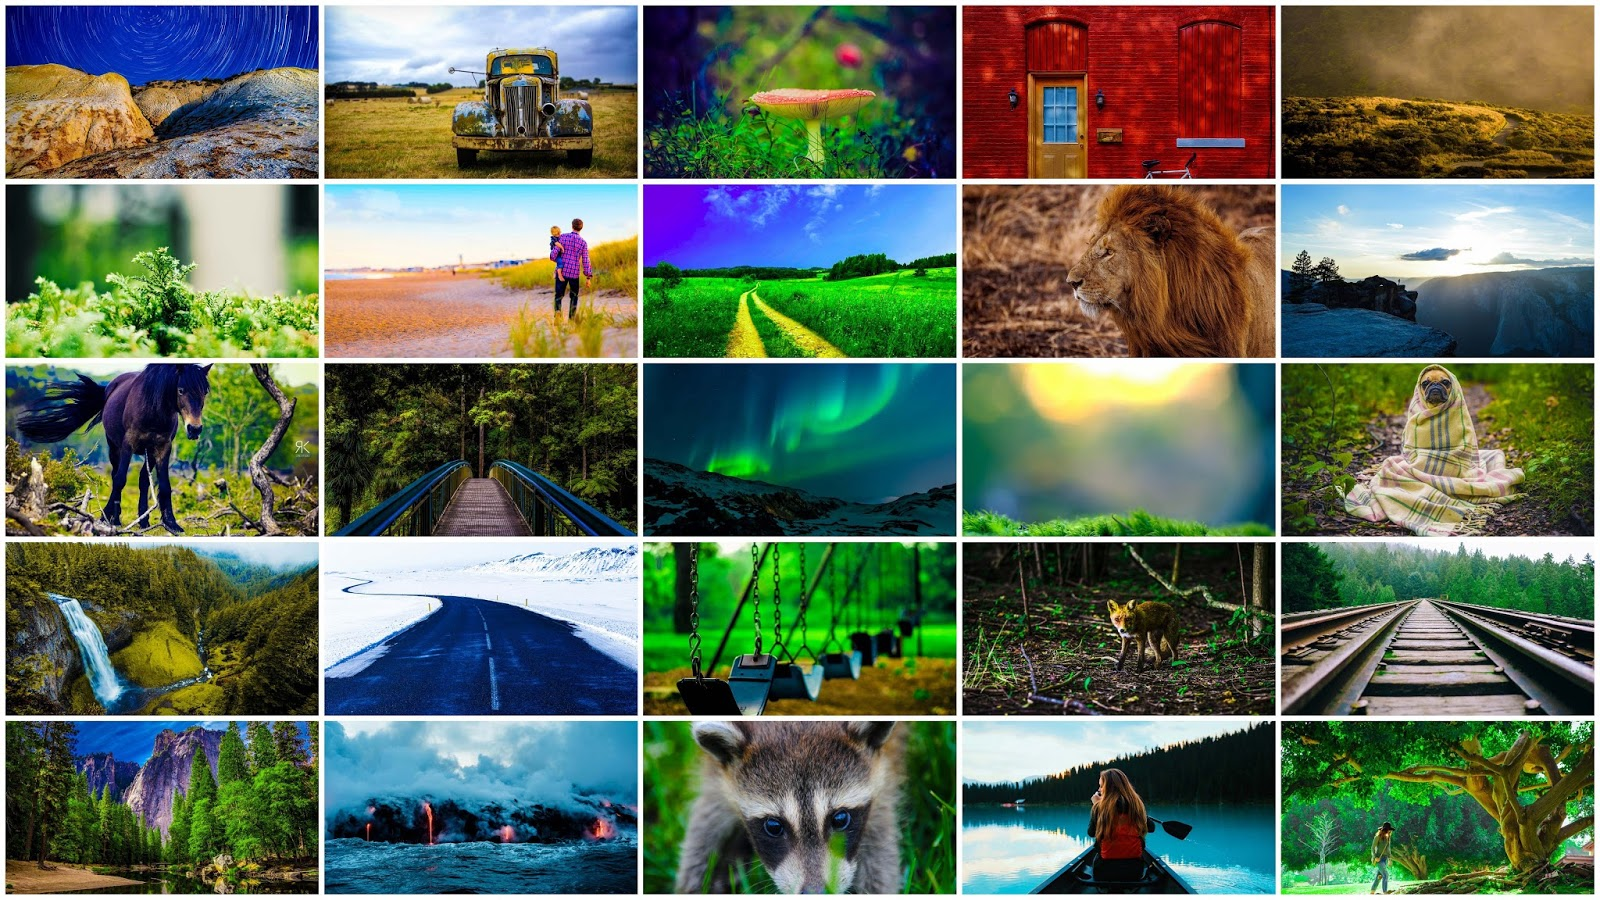 hd wallpapers for photoshop editing services